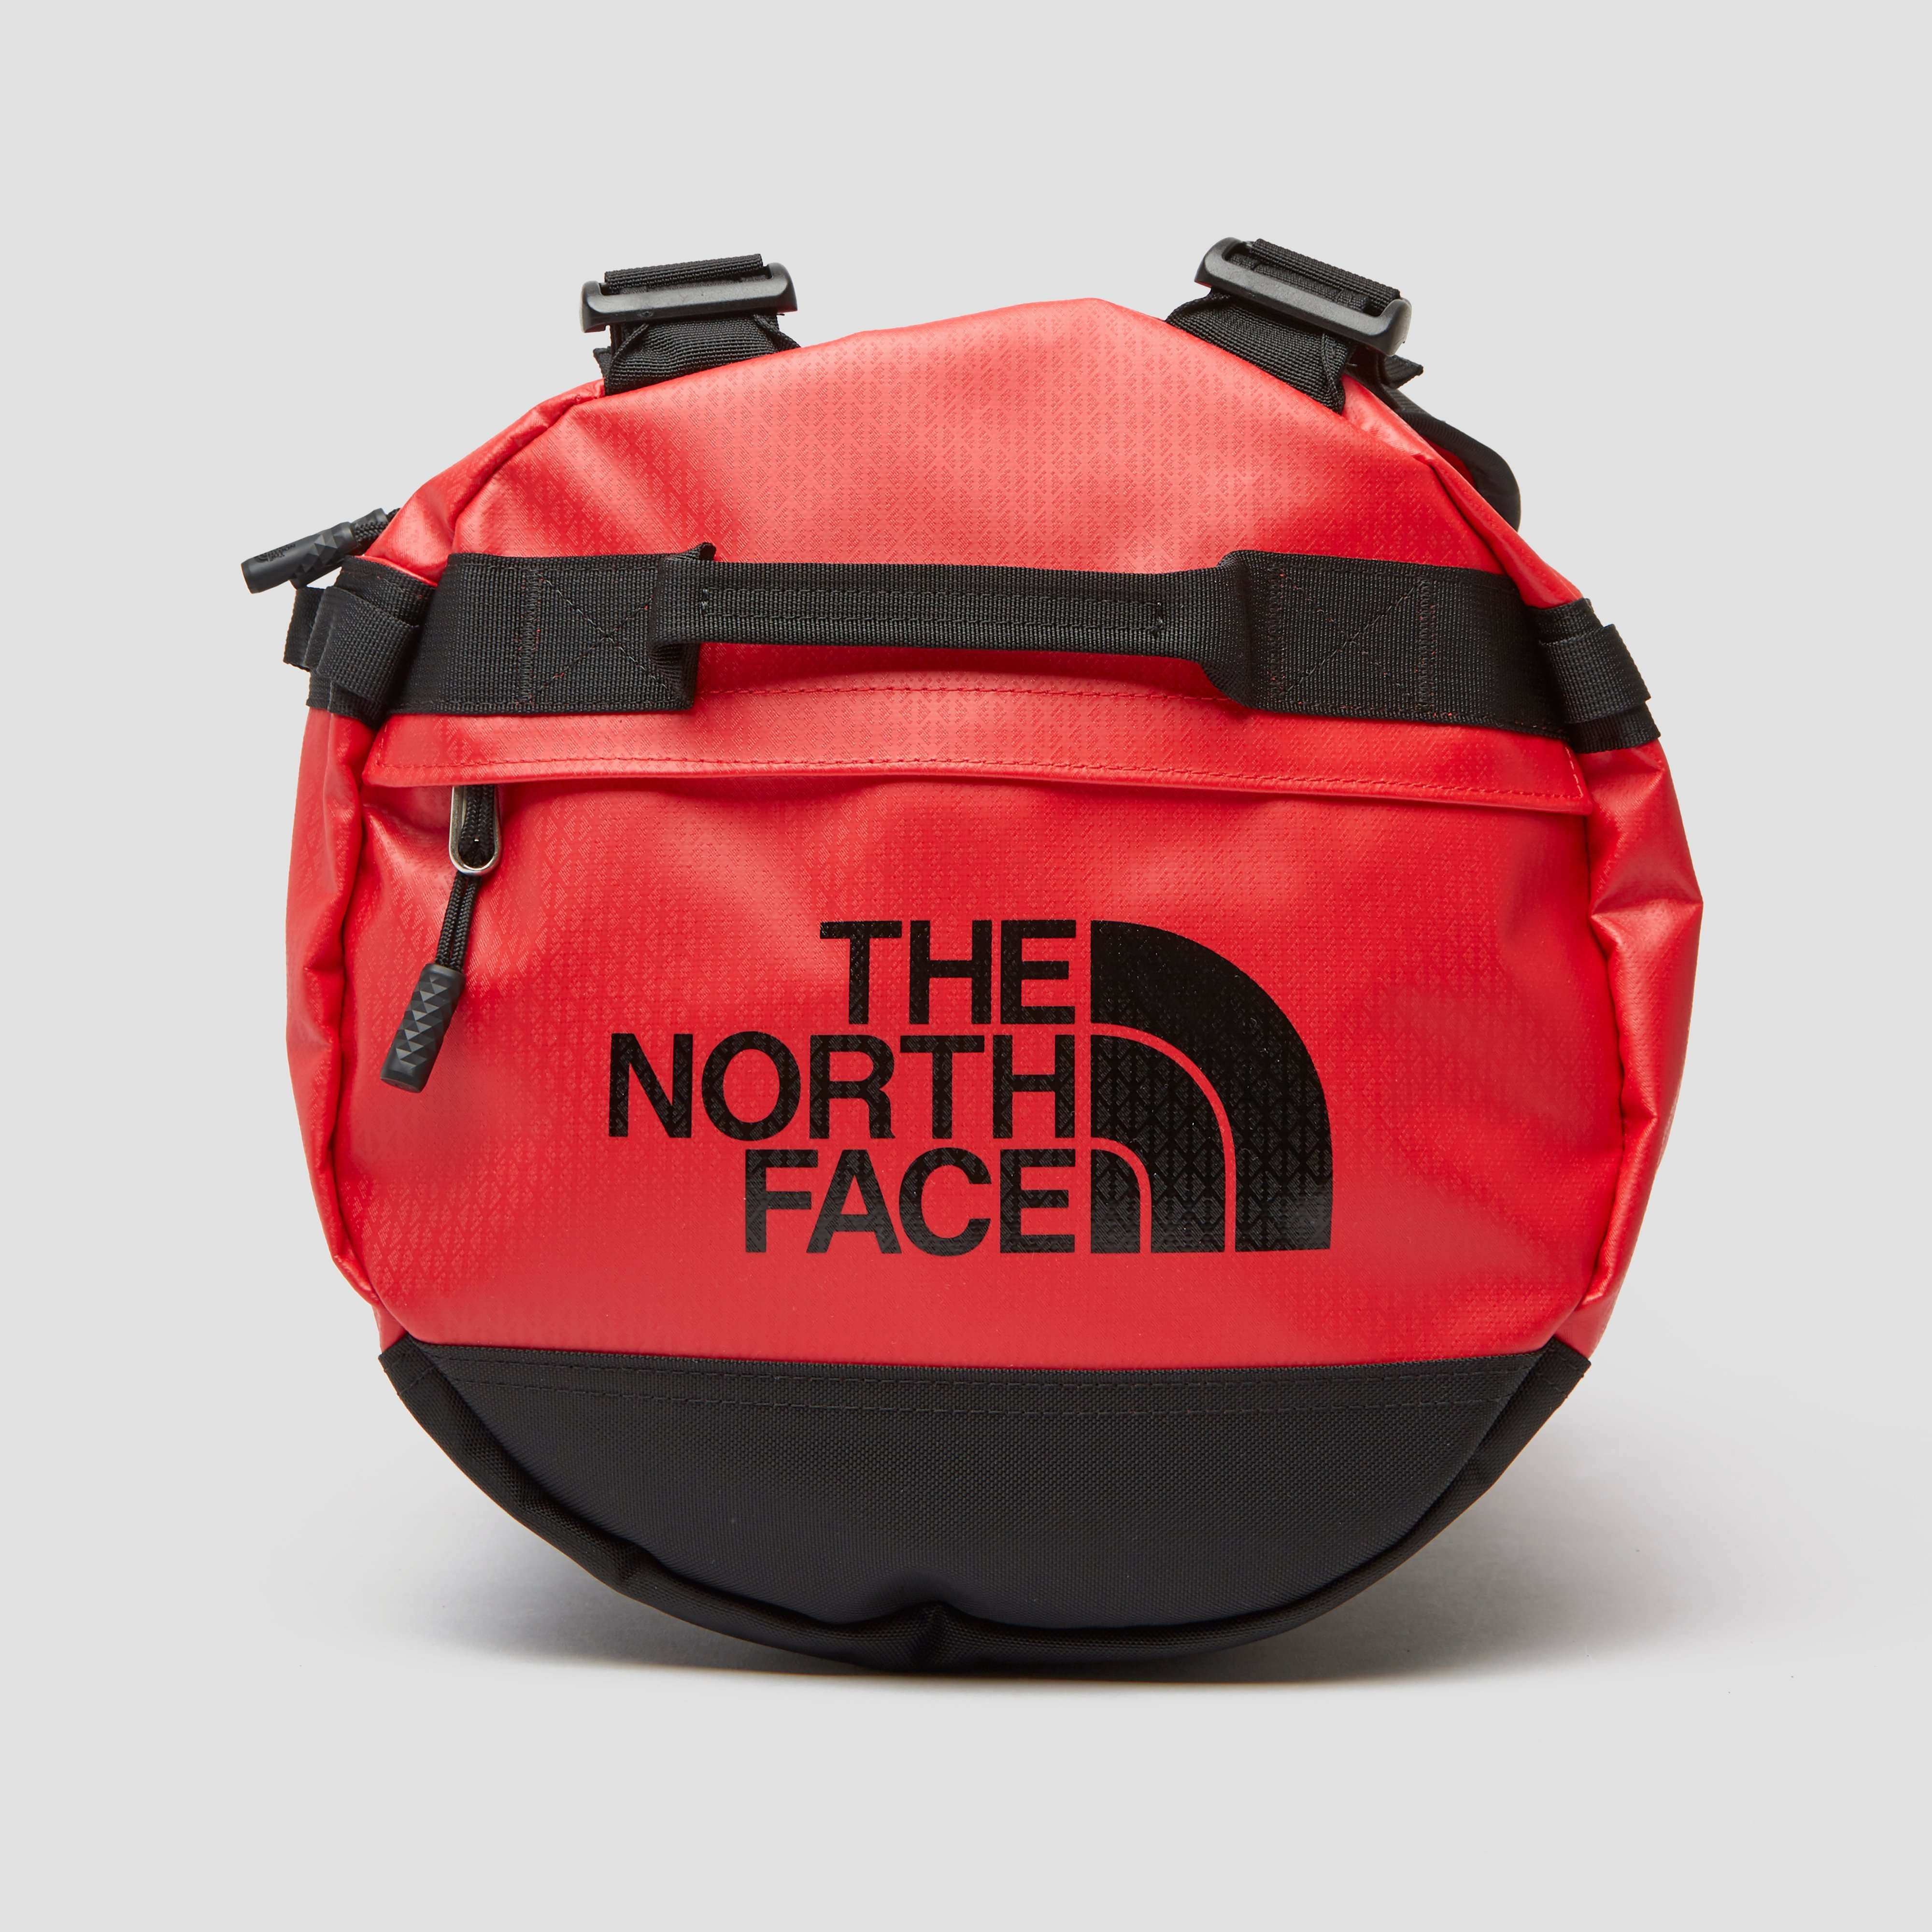 THE NORTH FACE BASE CAMP DUFFEL BACKPACK SMALL ROOD